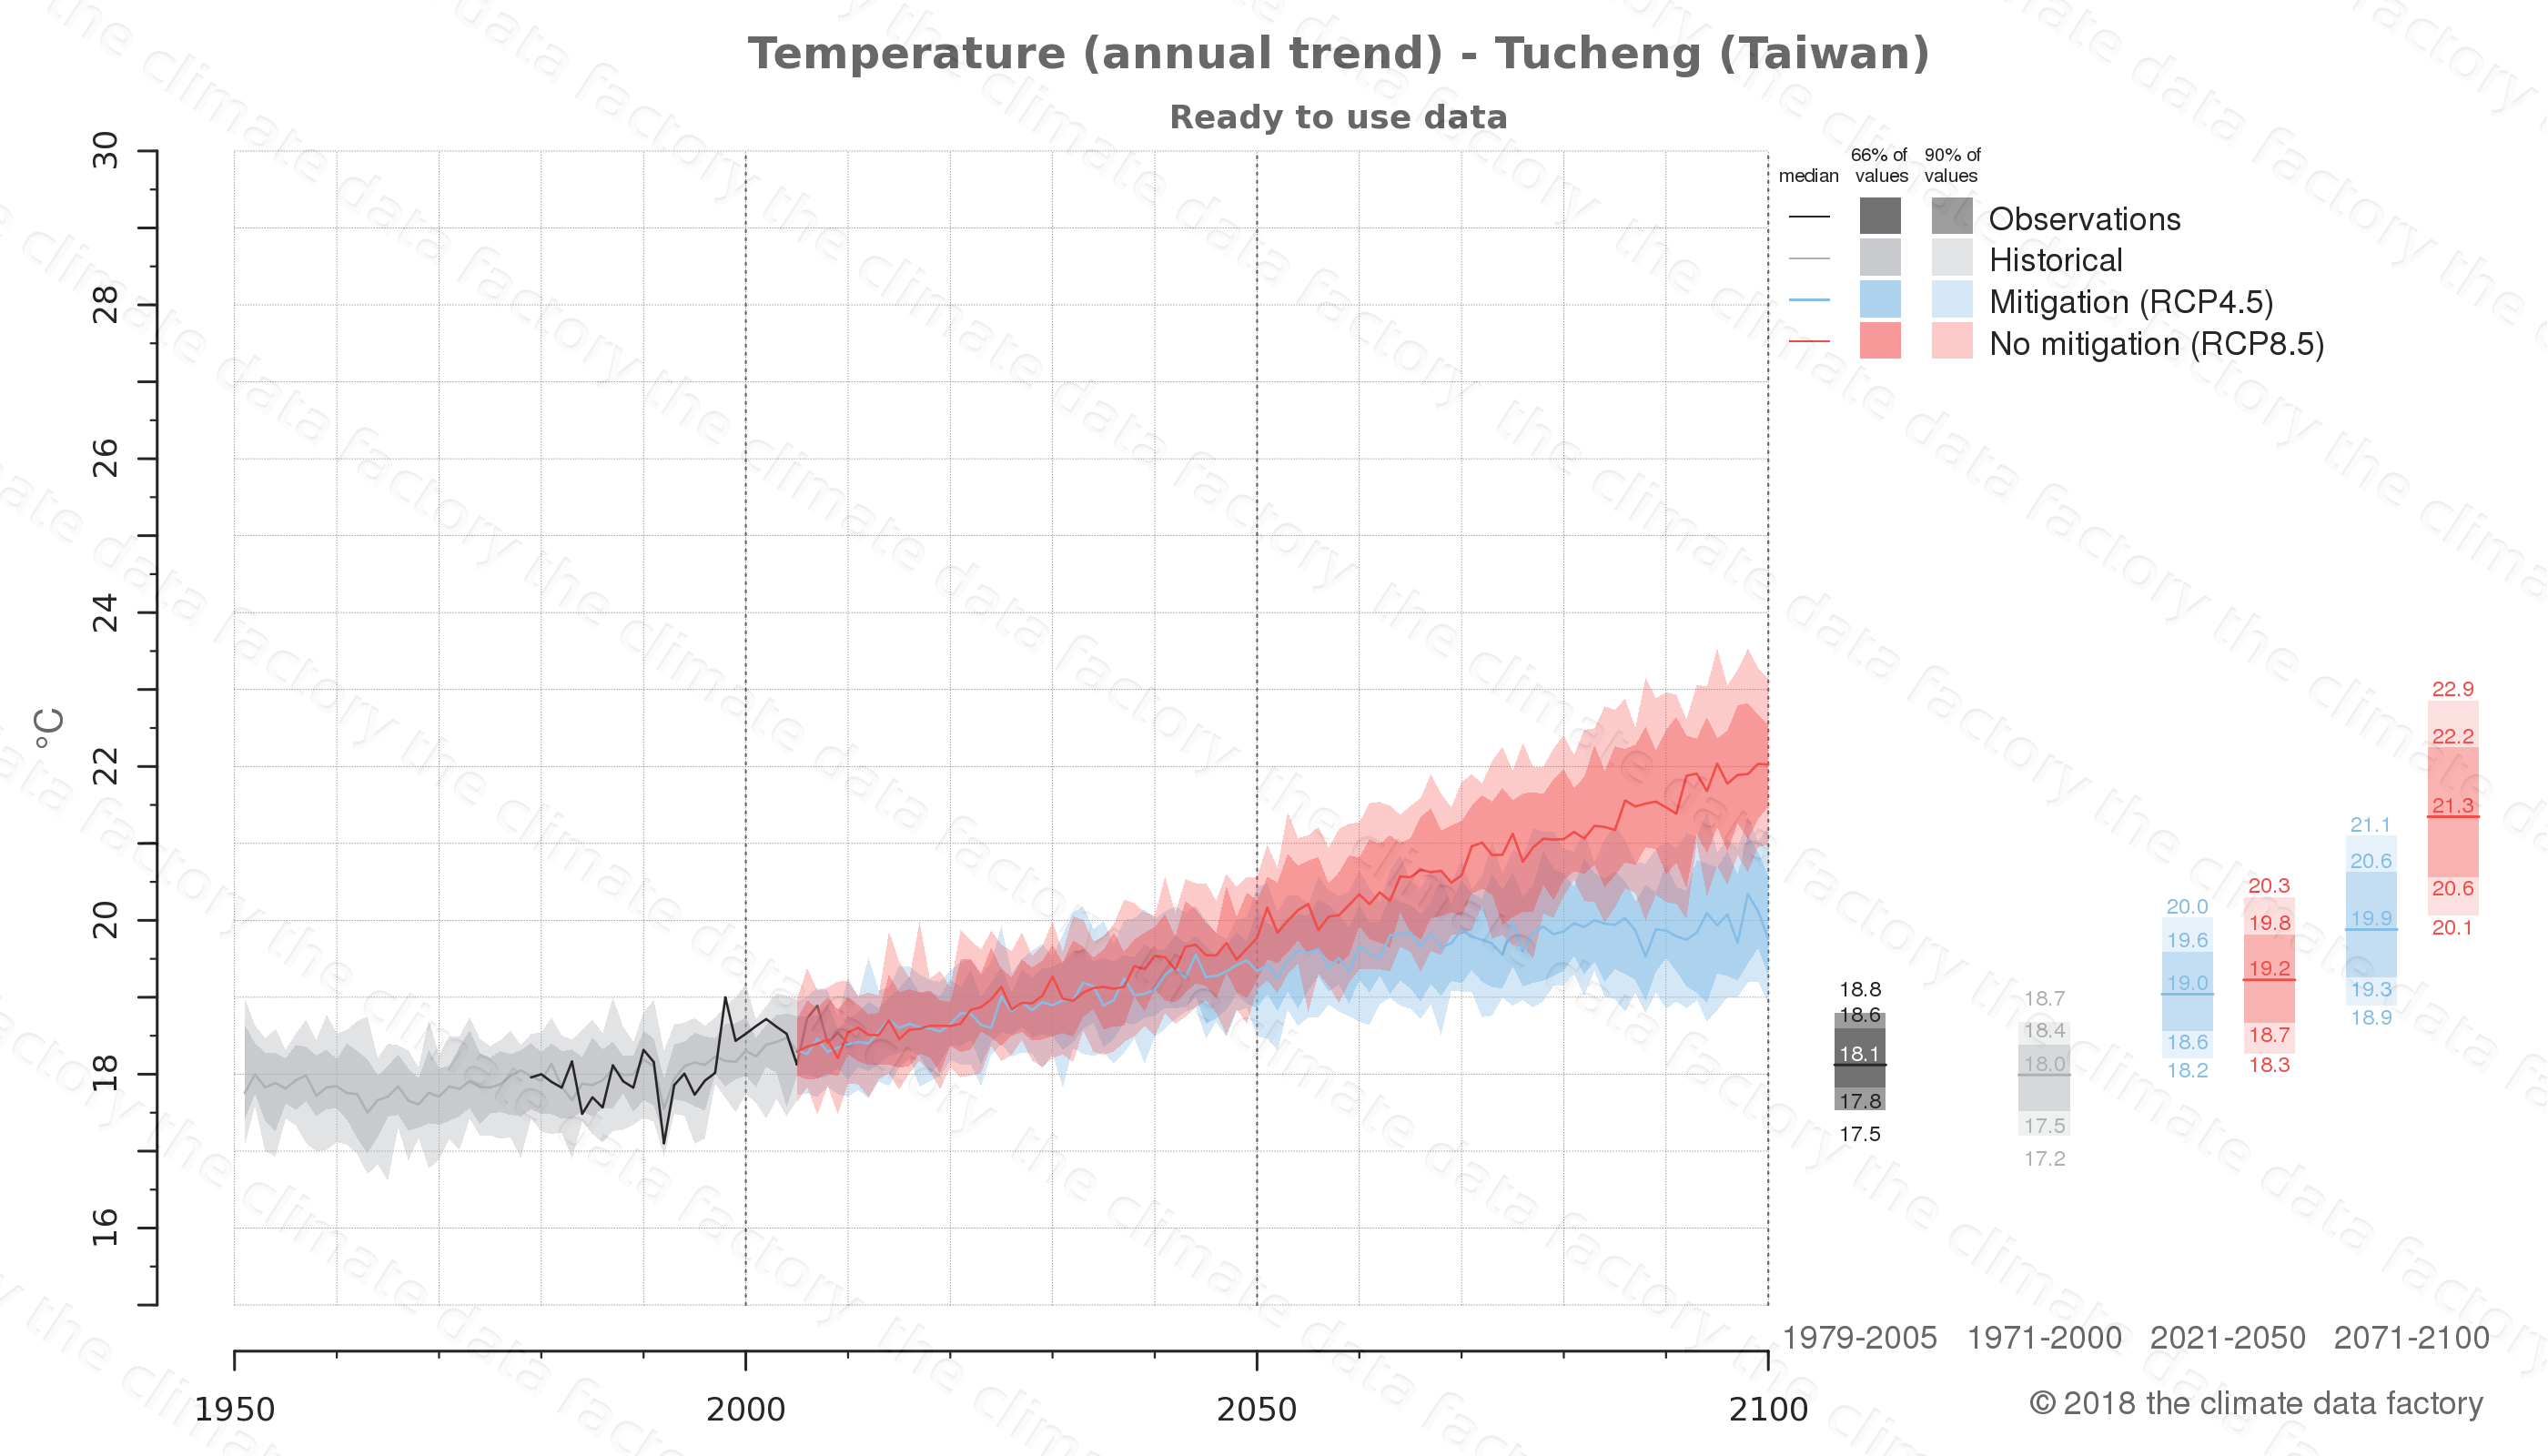 climate change data policy adaptation climate graph city data temperature tucheng taiwan